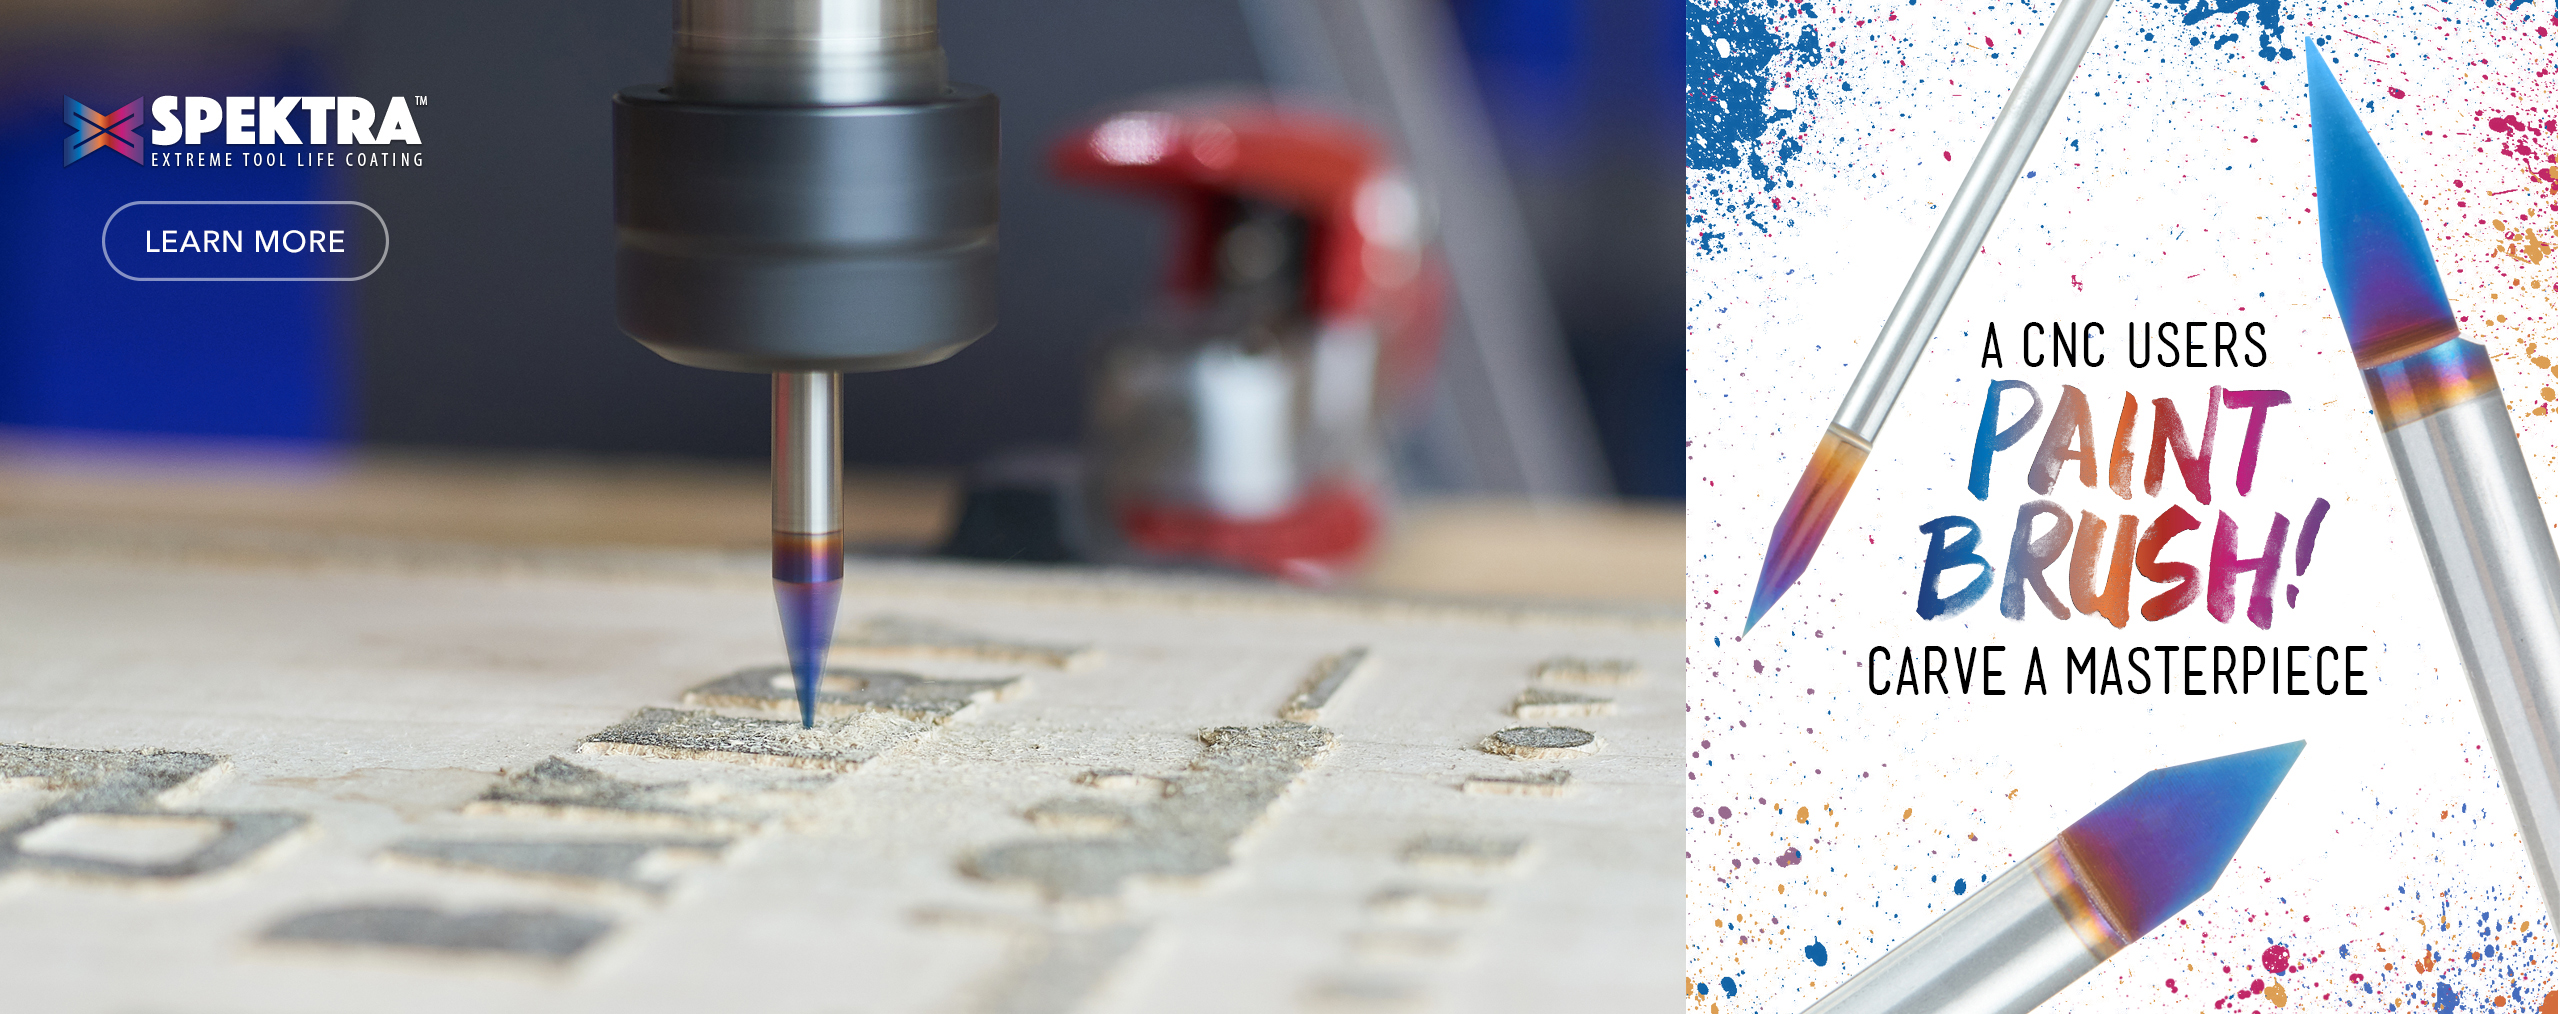 Spektra Engraving Router Bits